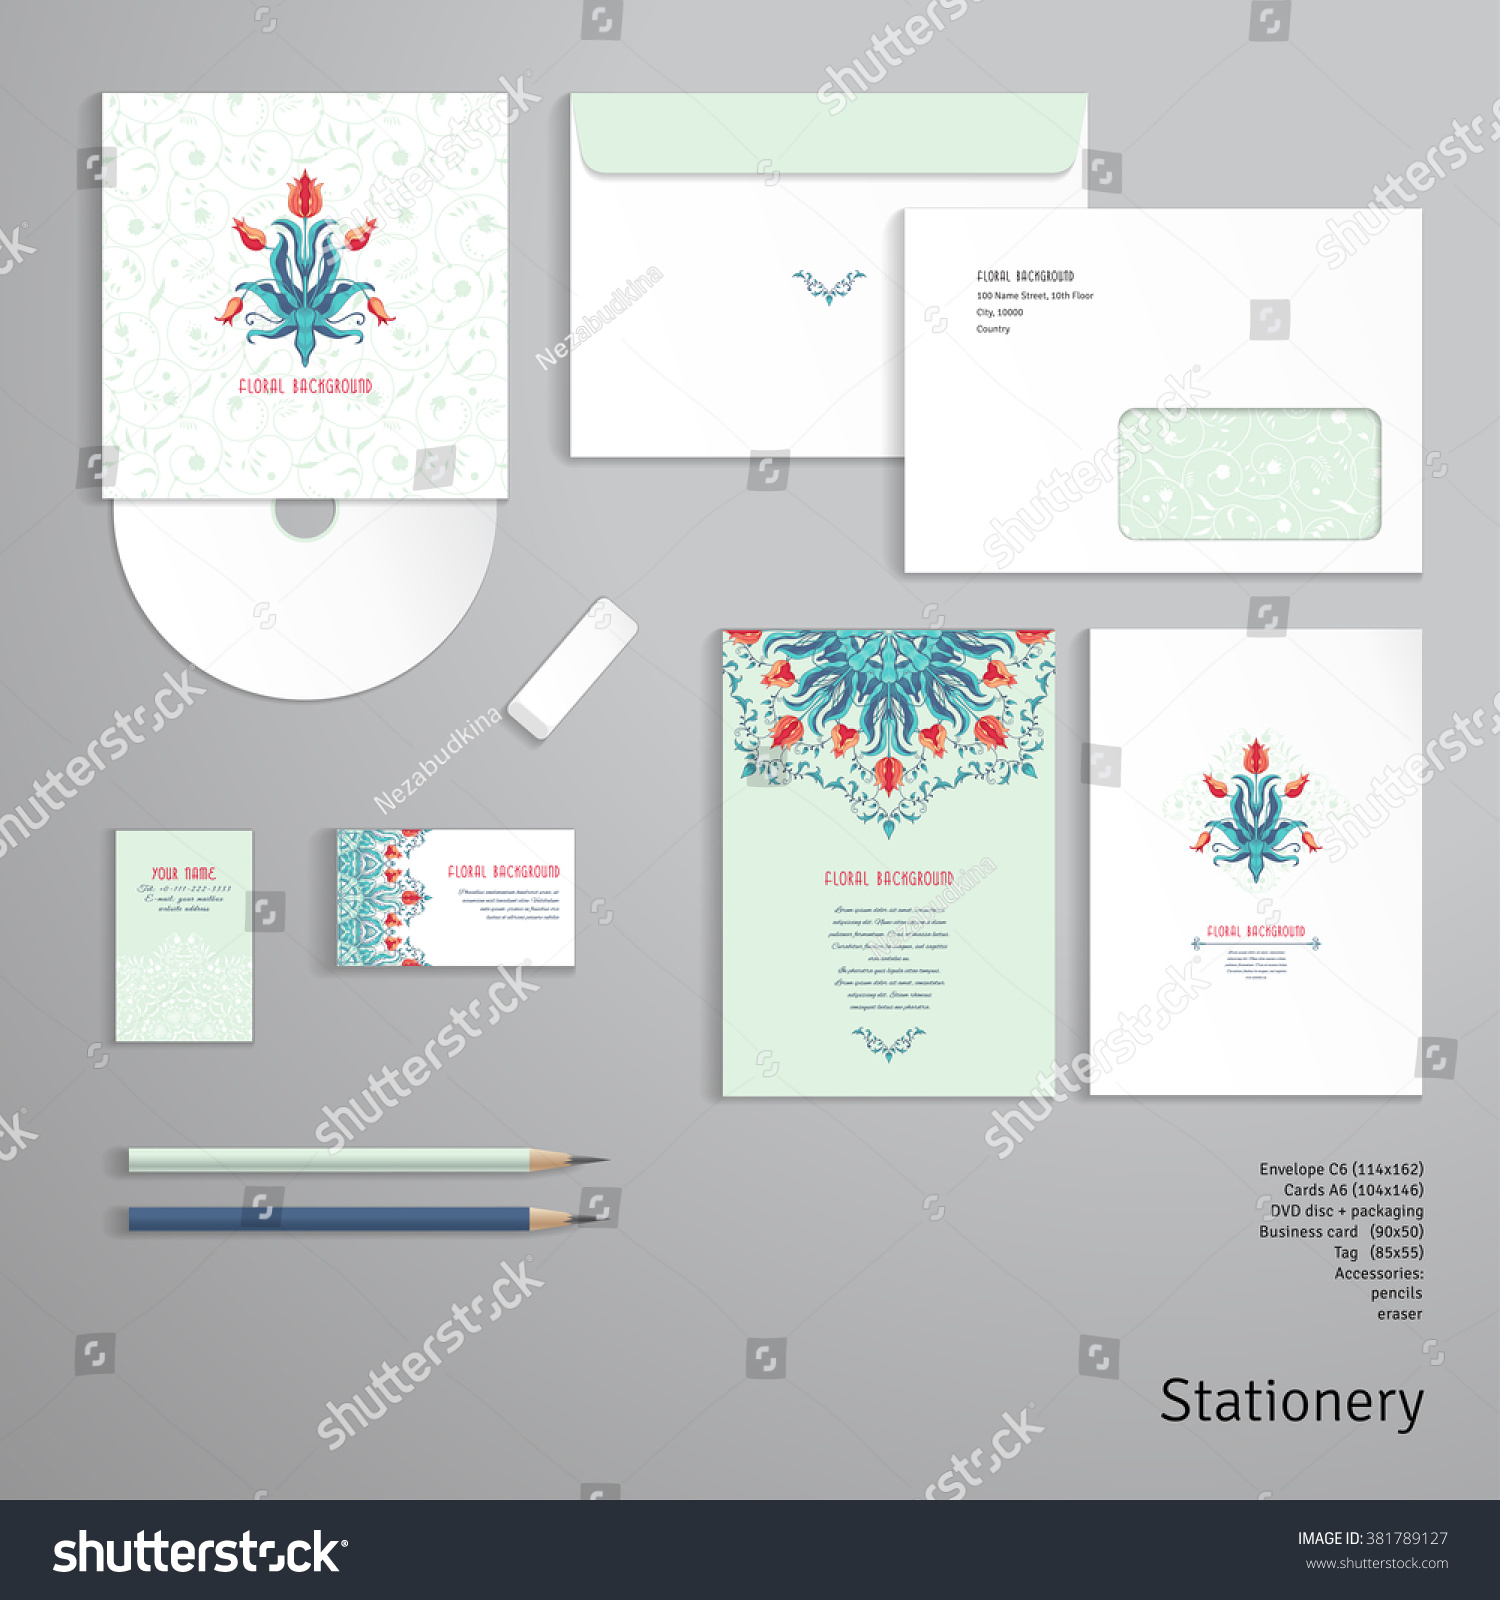 Vector Templates Envelope Cards Business Cards Stock Vector (2018 ...